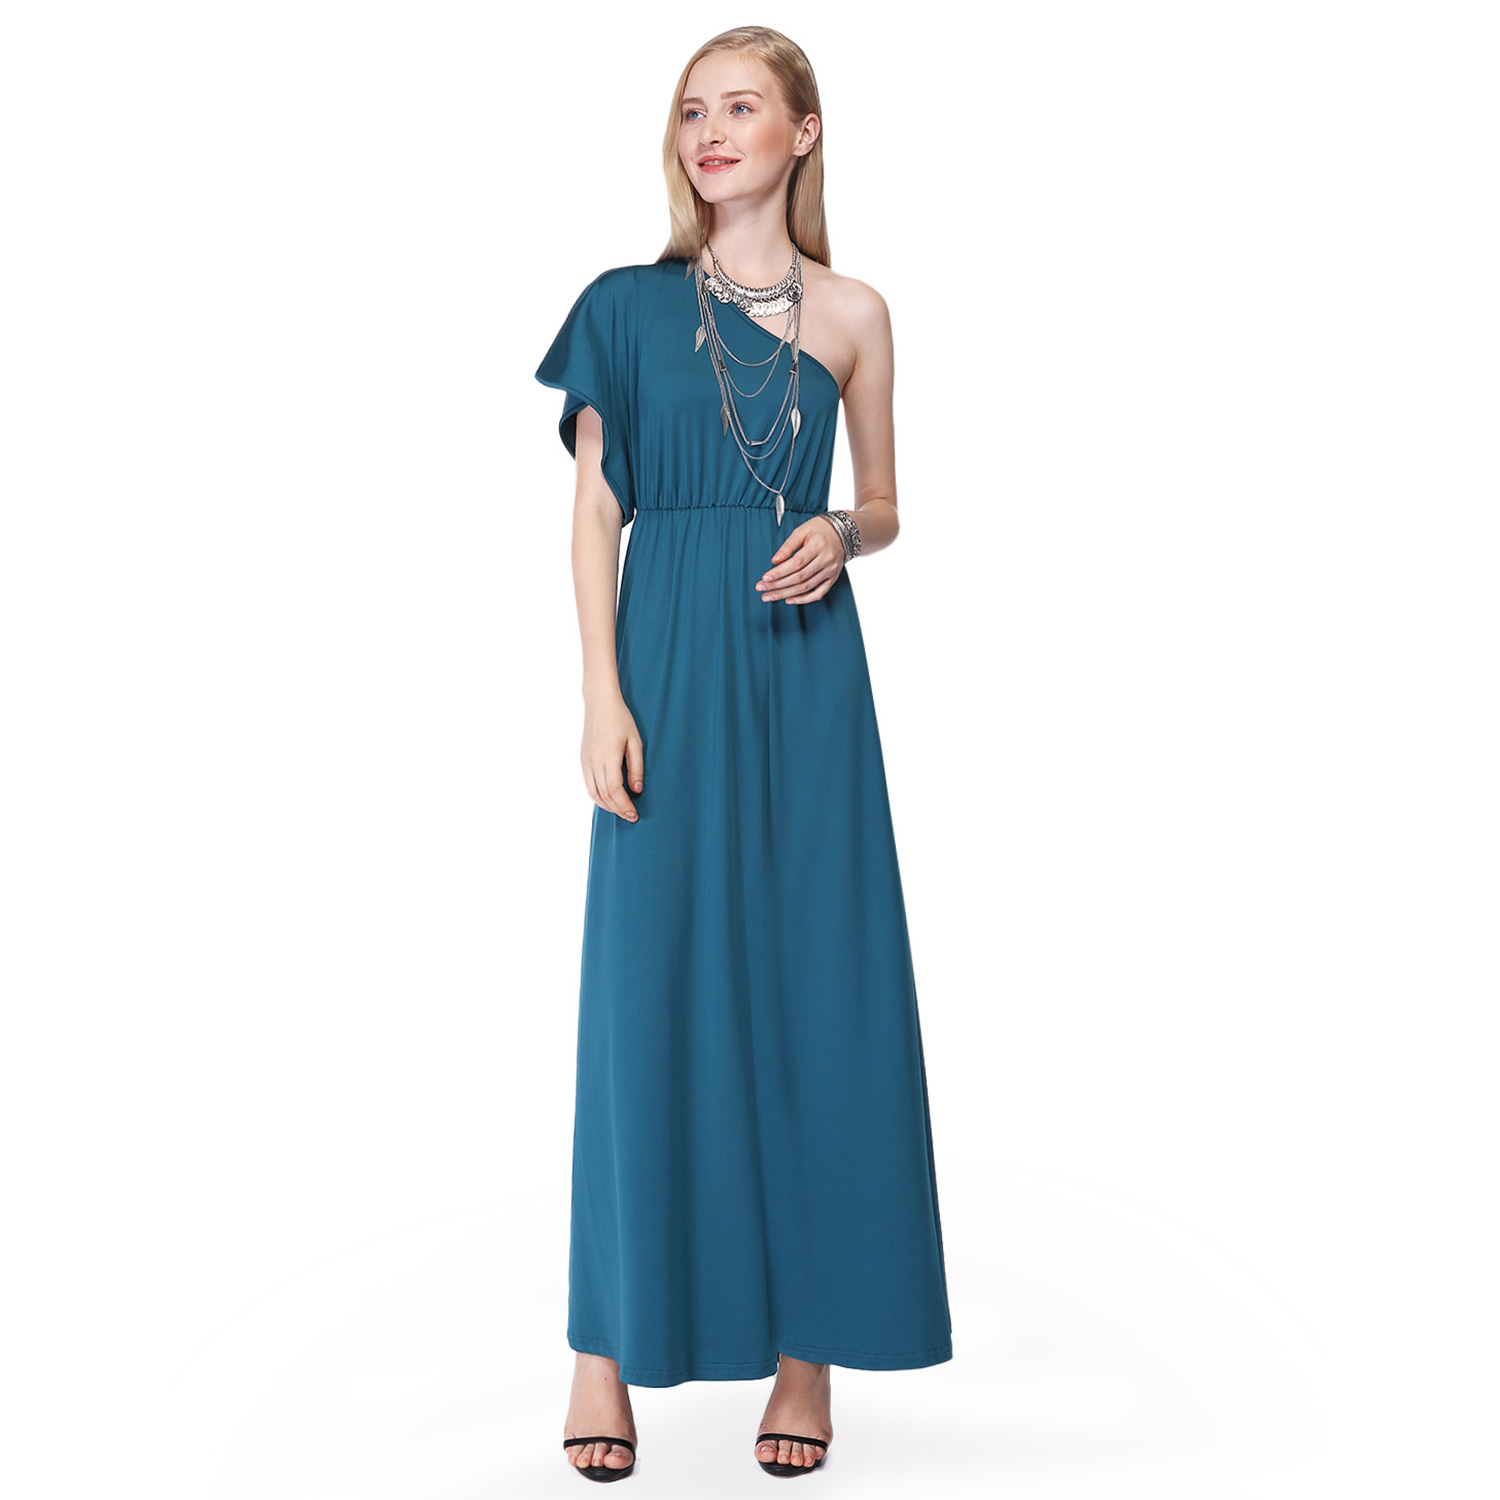 Womens One Shoulder Homecoming Cocktail Party Summer Dresses 07049 ...